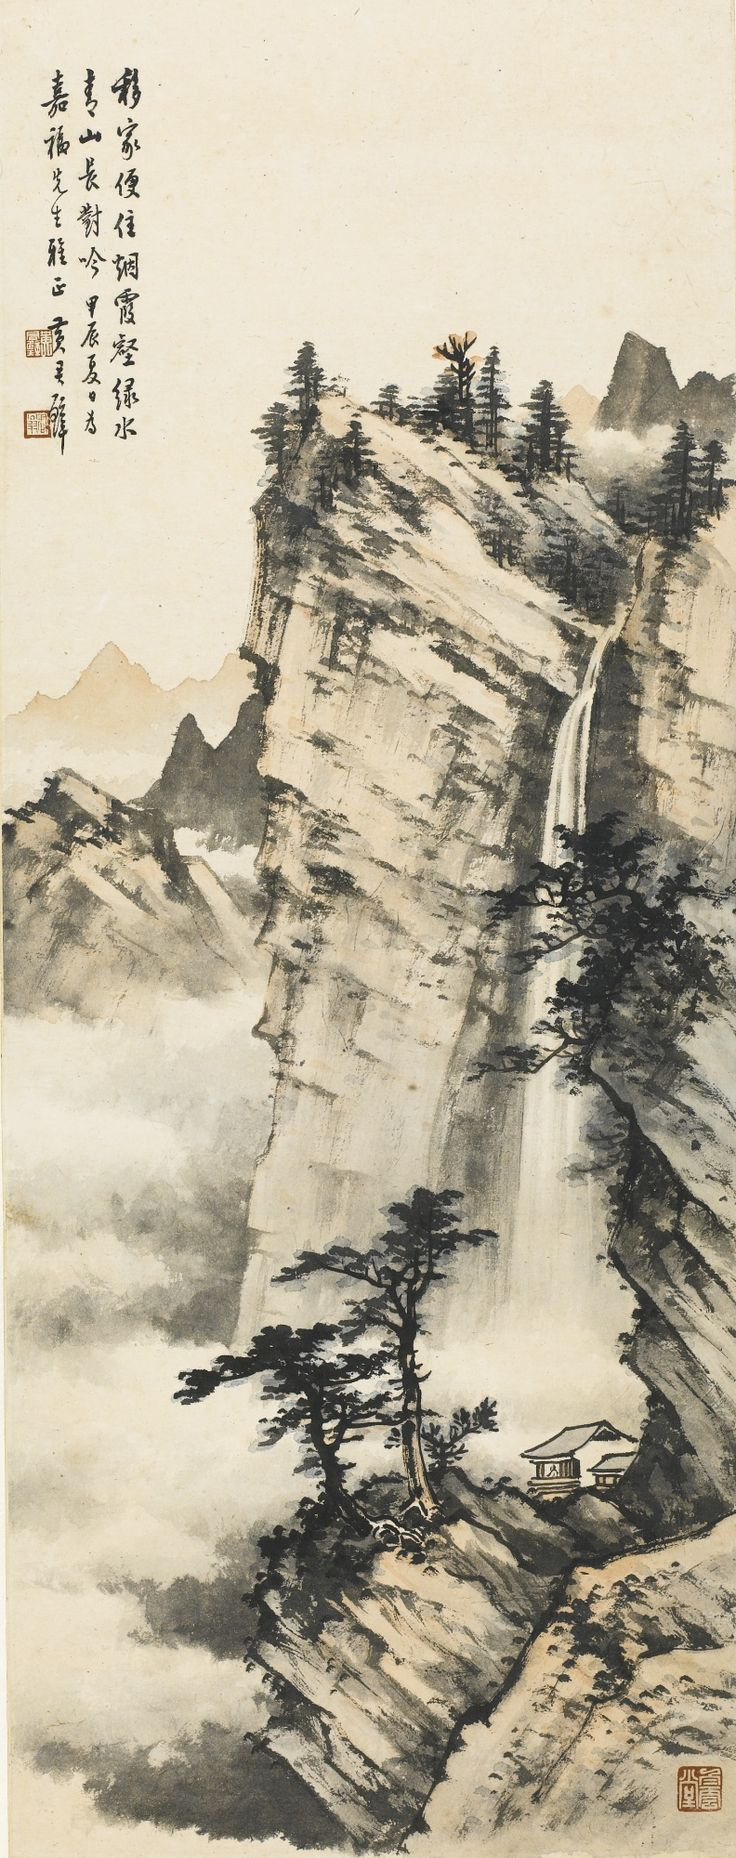 HUANG JUNBI (1898-1991)<br>APPRECIATING THE WATERFALL | Lot | Sotheby's